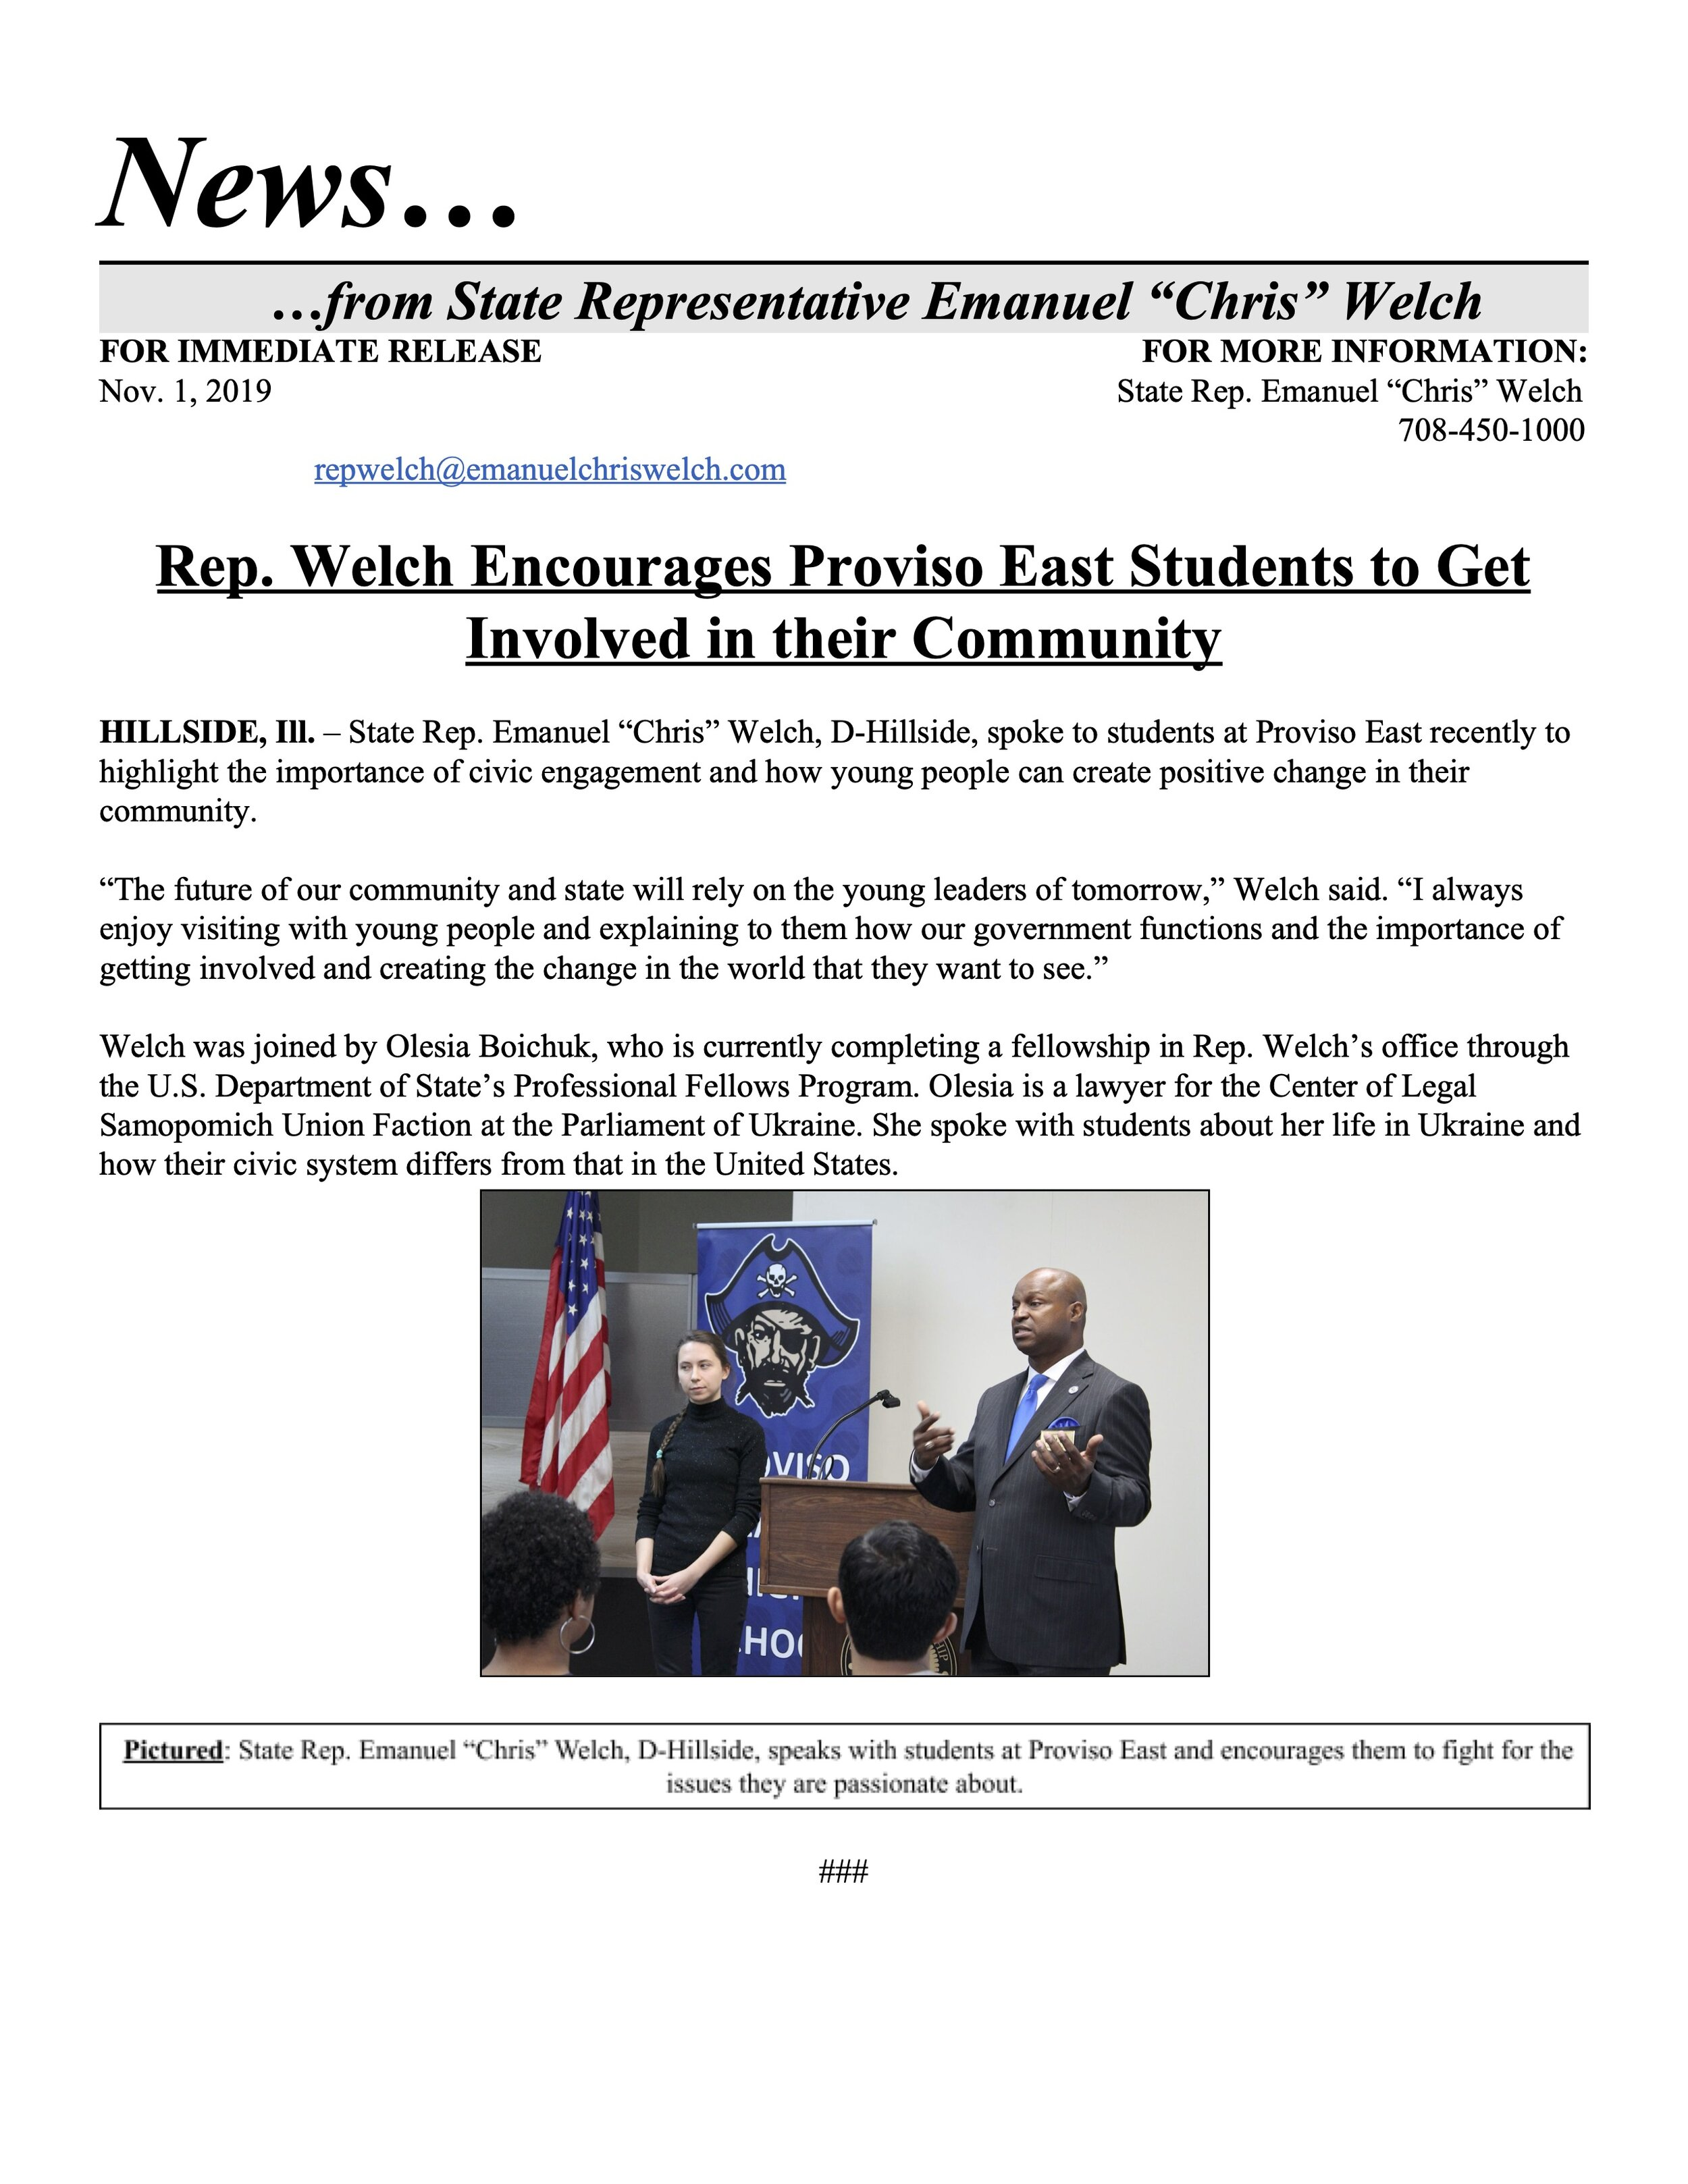 Rep. Welch Encourages Proviso East Students to Get Involved in their Community  (November 1, 2019)